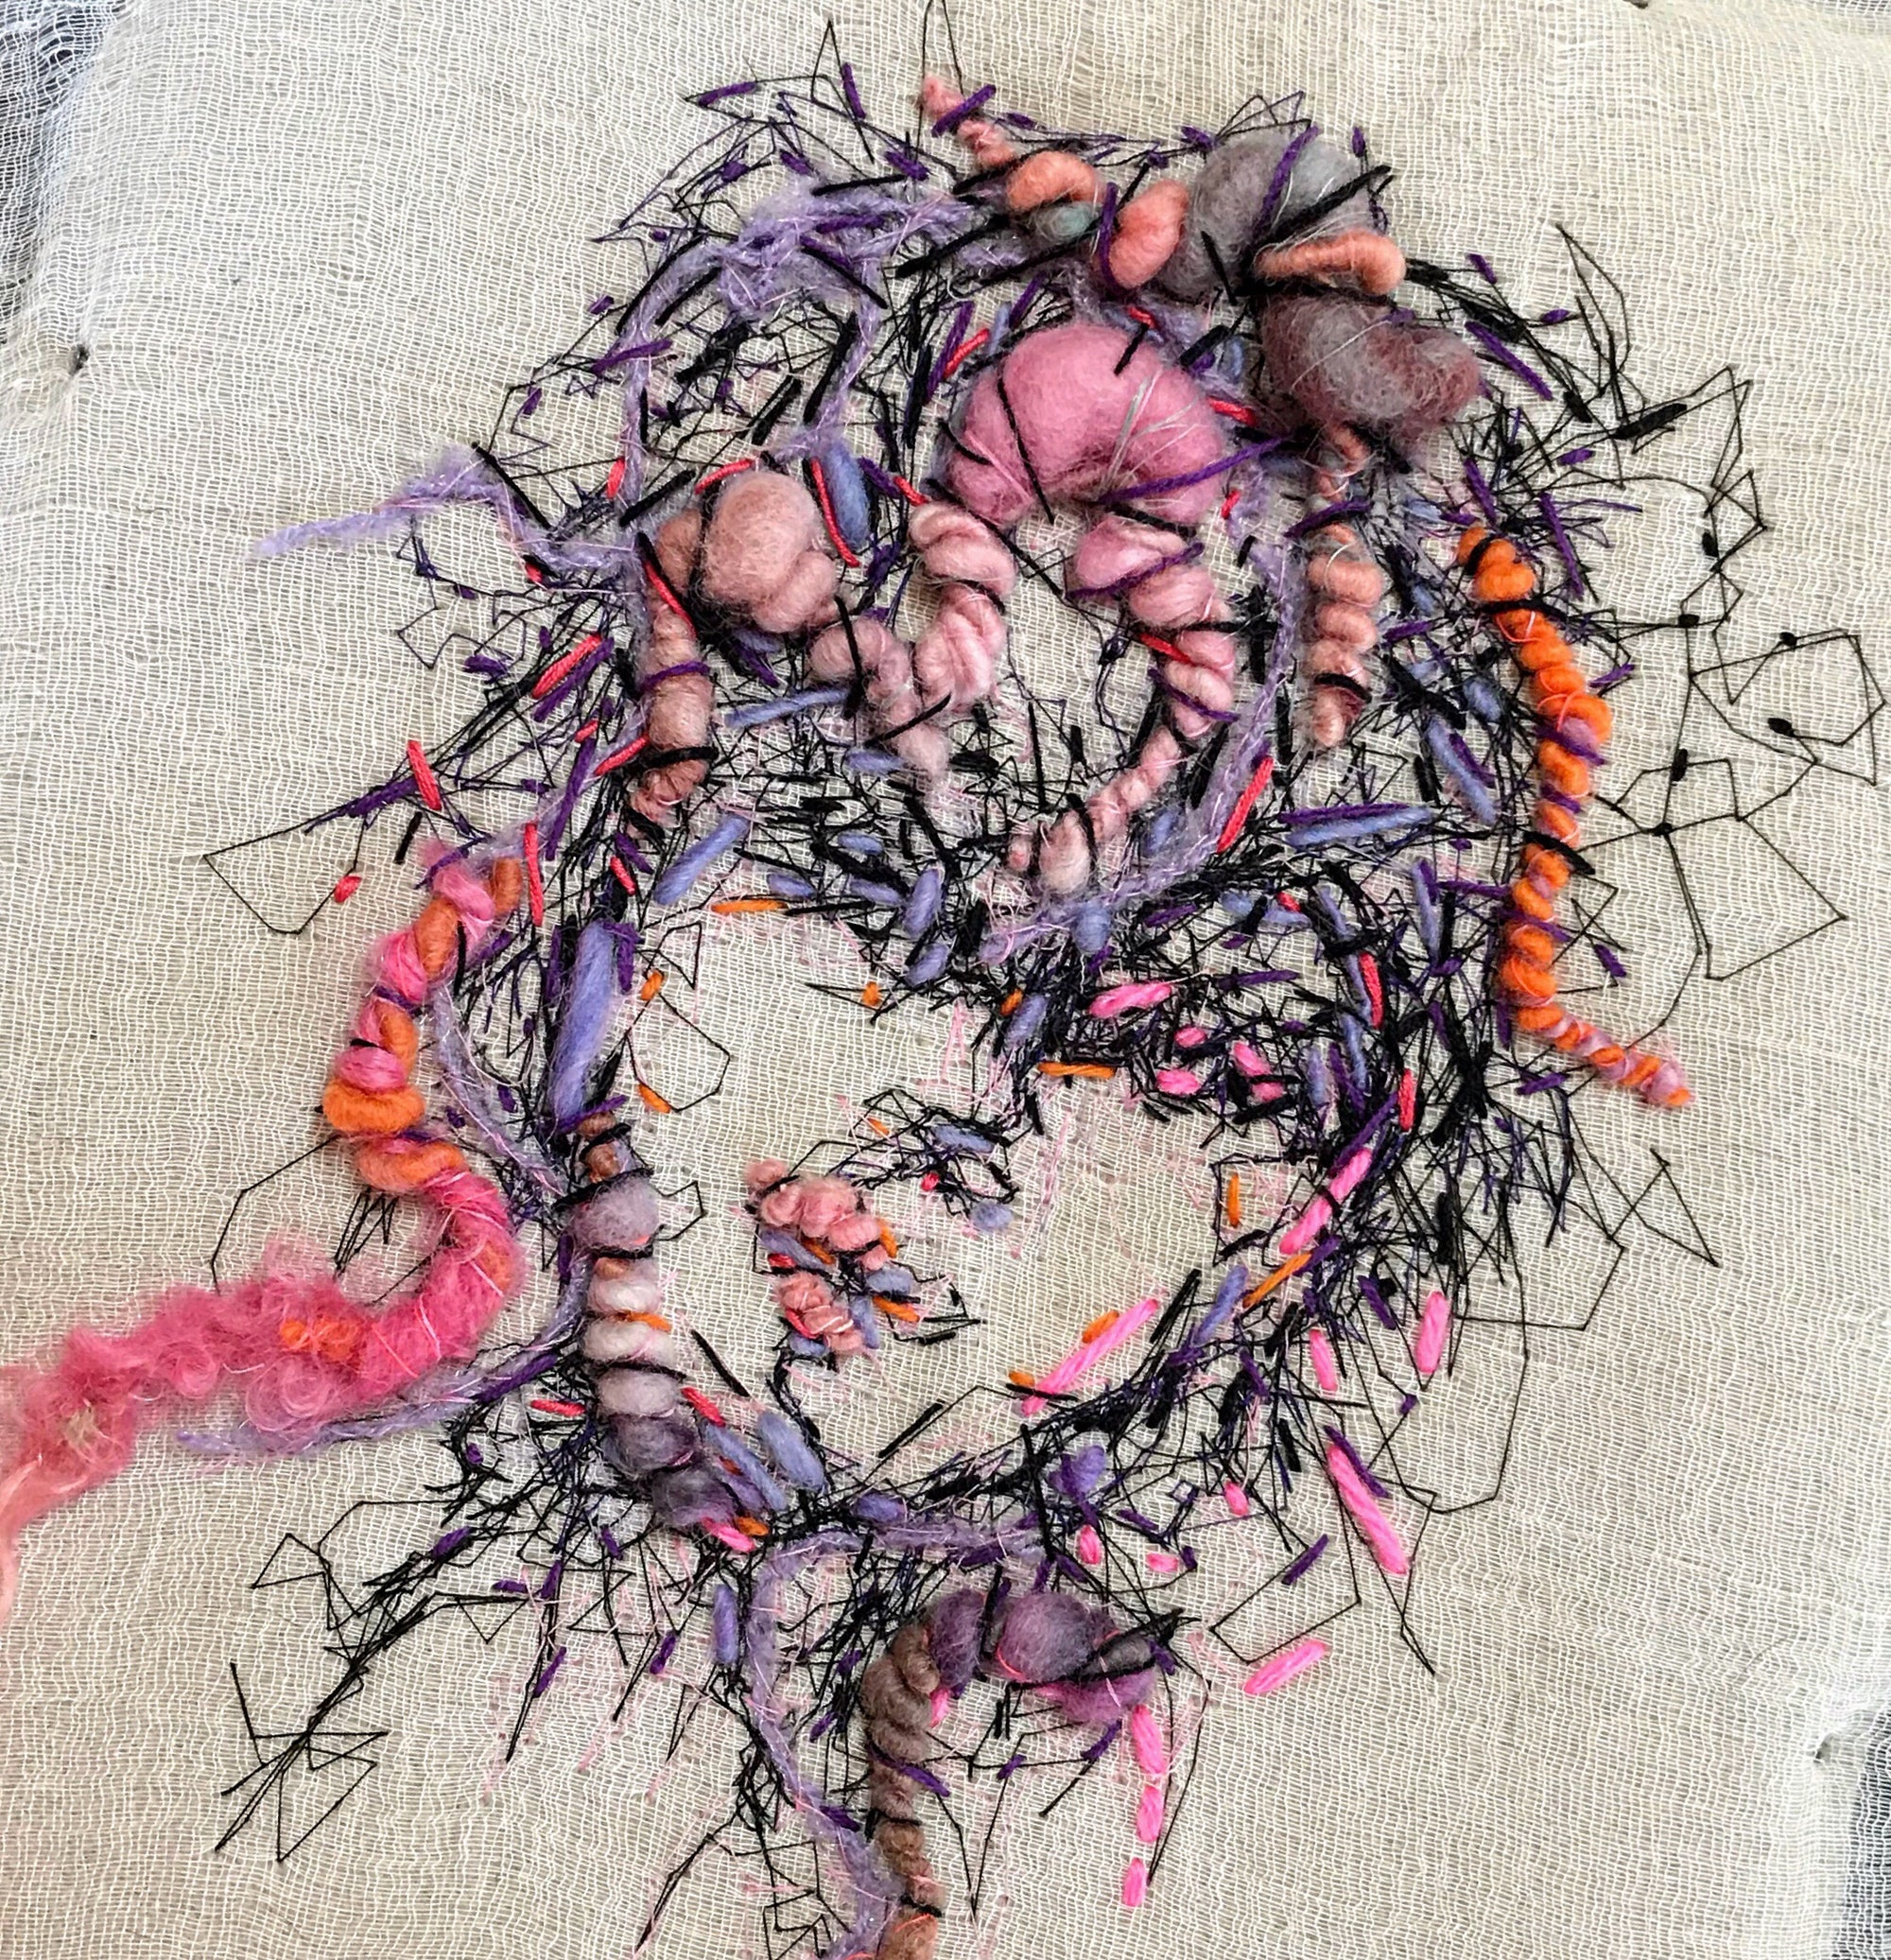 Embroidered portrait #1 - Mynoush